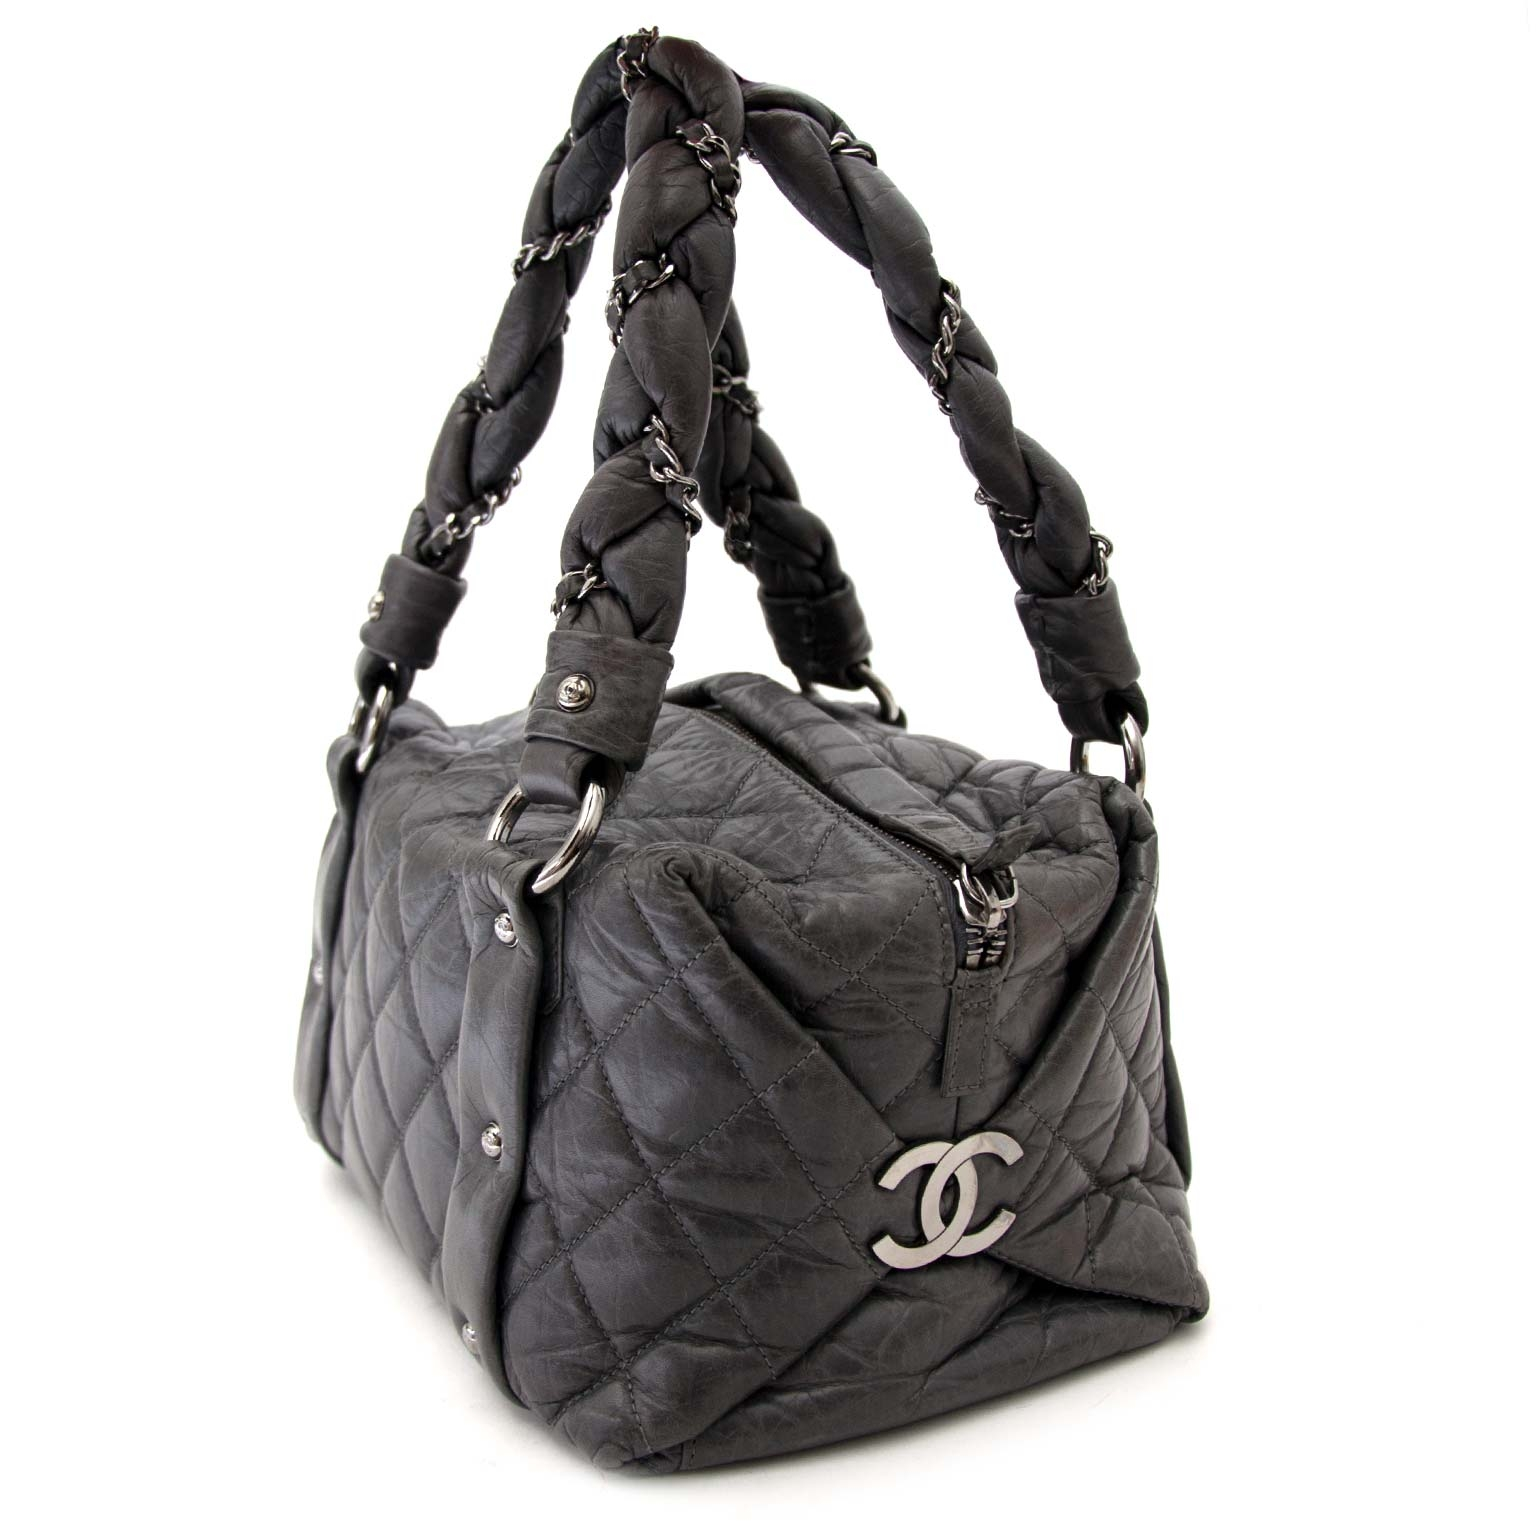 Chanel Grey Distressed Leather Lady Braid Small Tote Bag koop veilig online jou tweedehands handtas